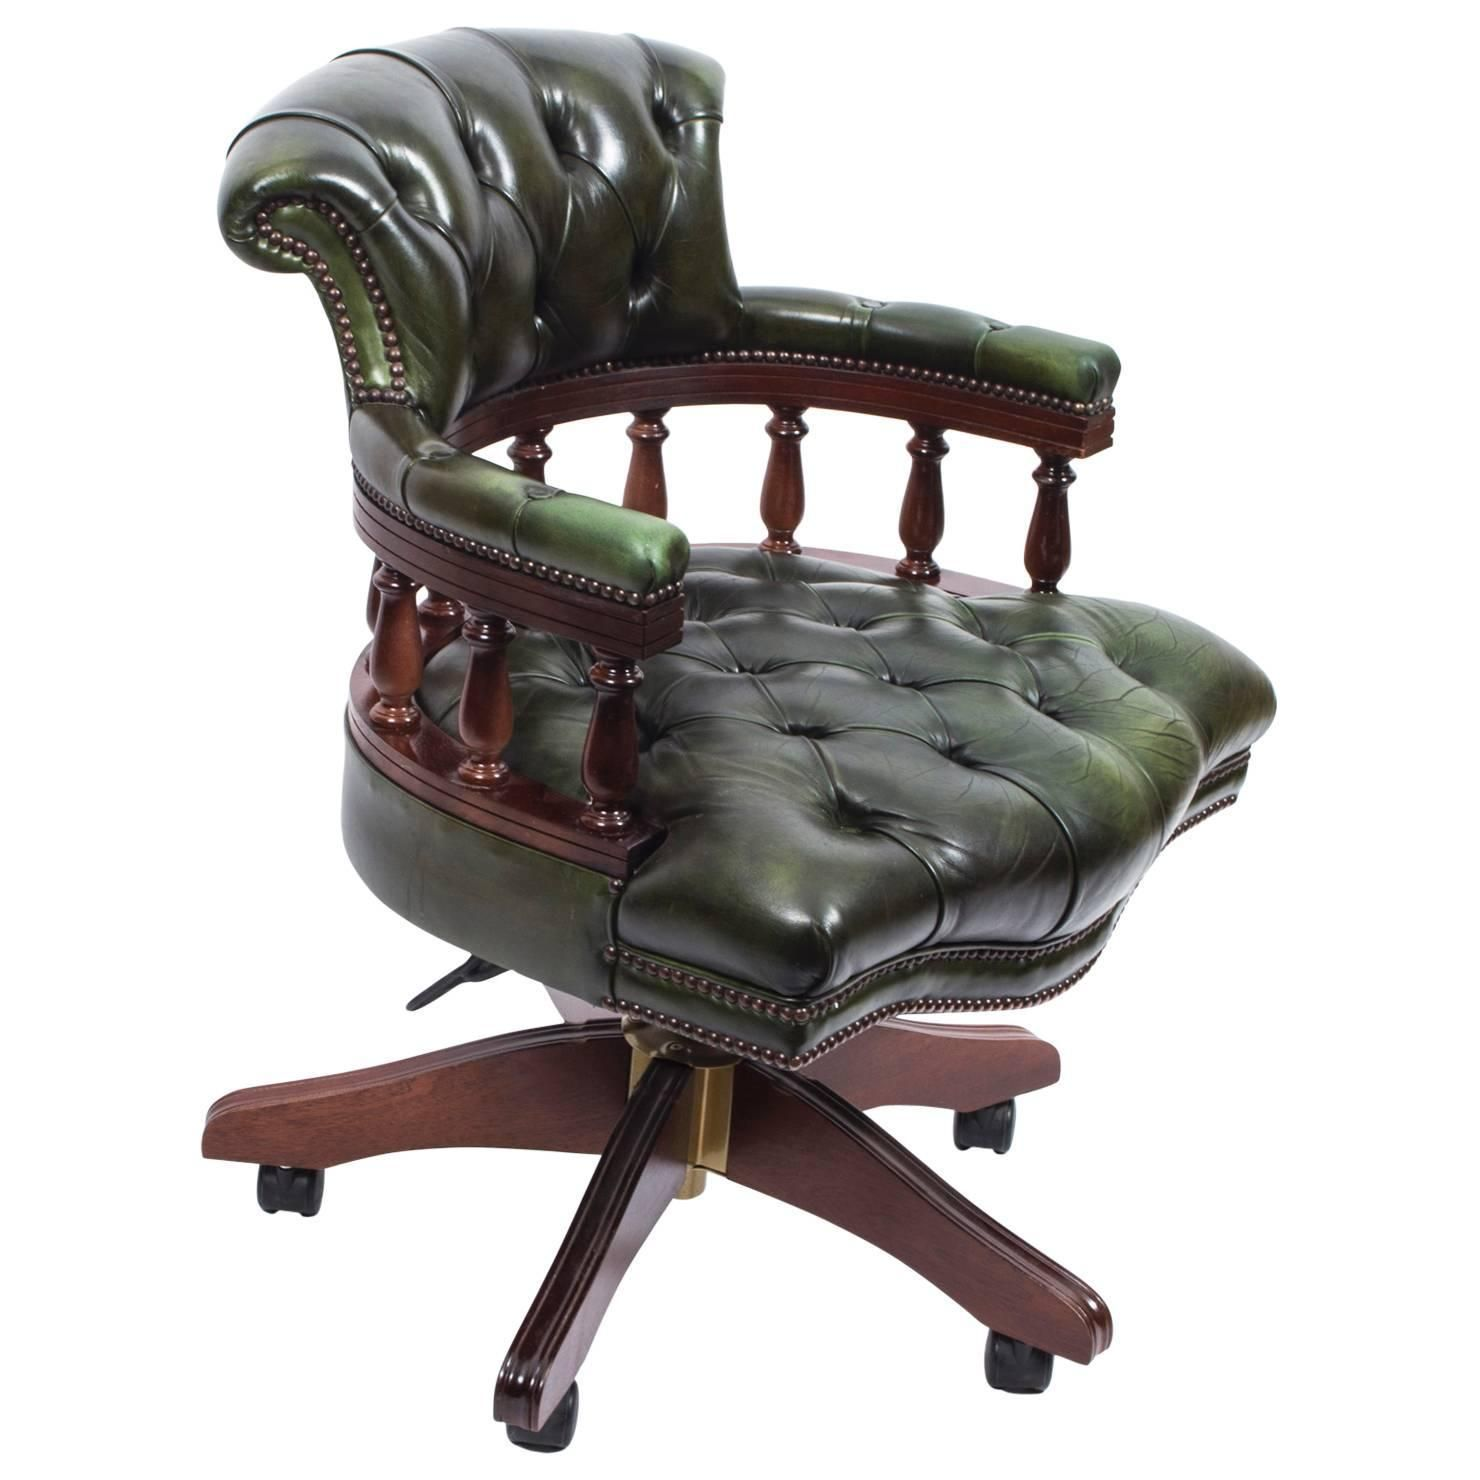 English Handmade Leather Captains Desk Chair Green  Desk chair